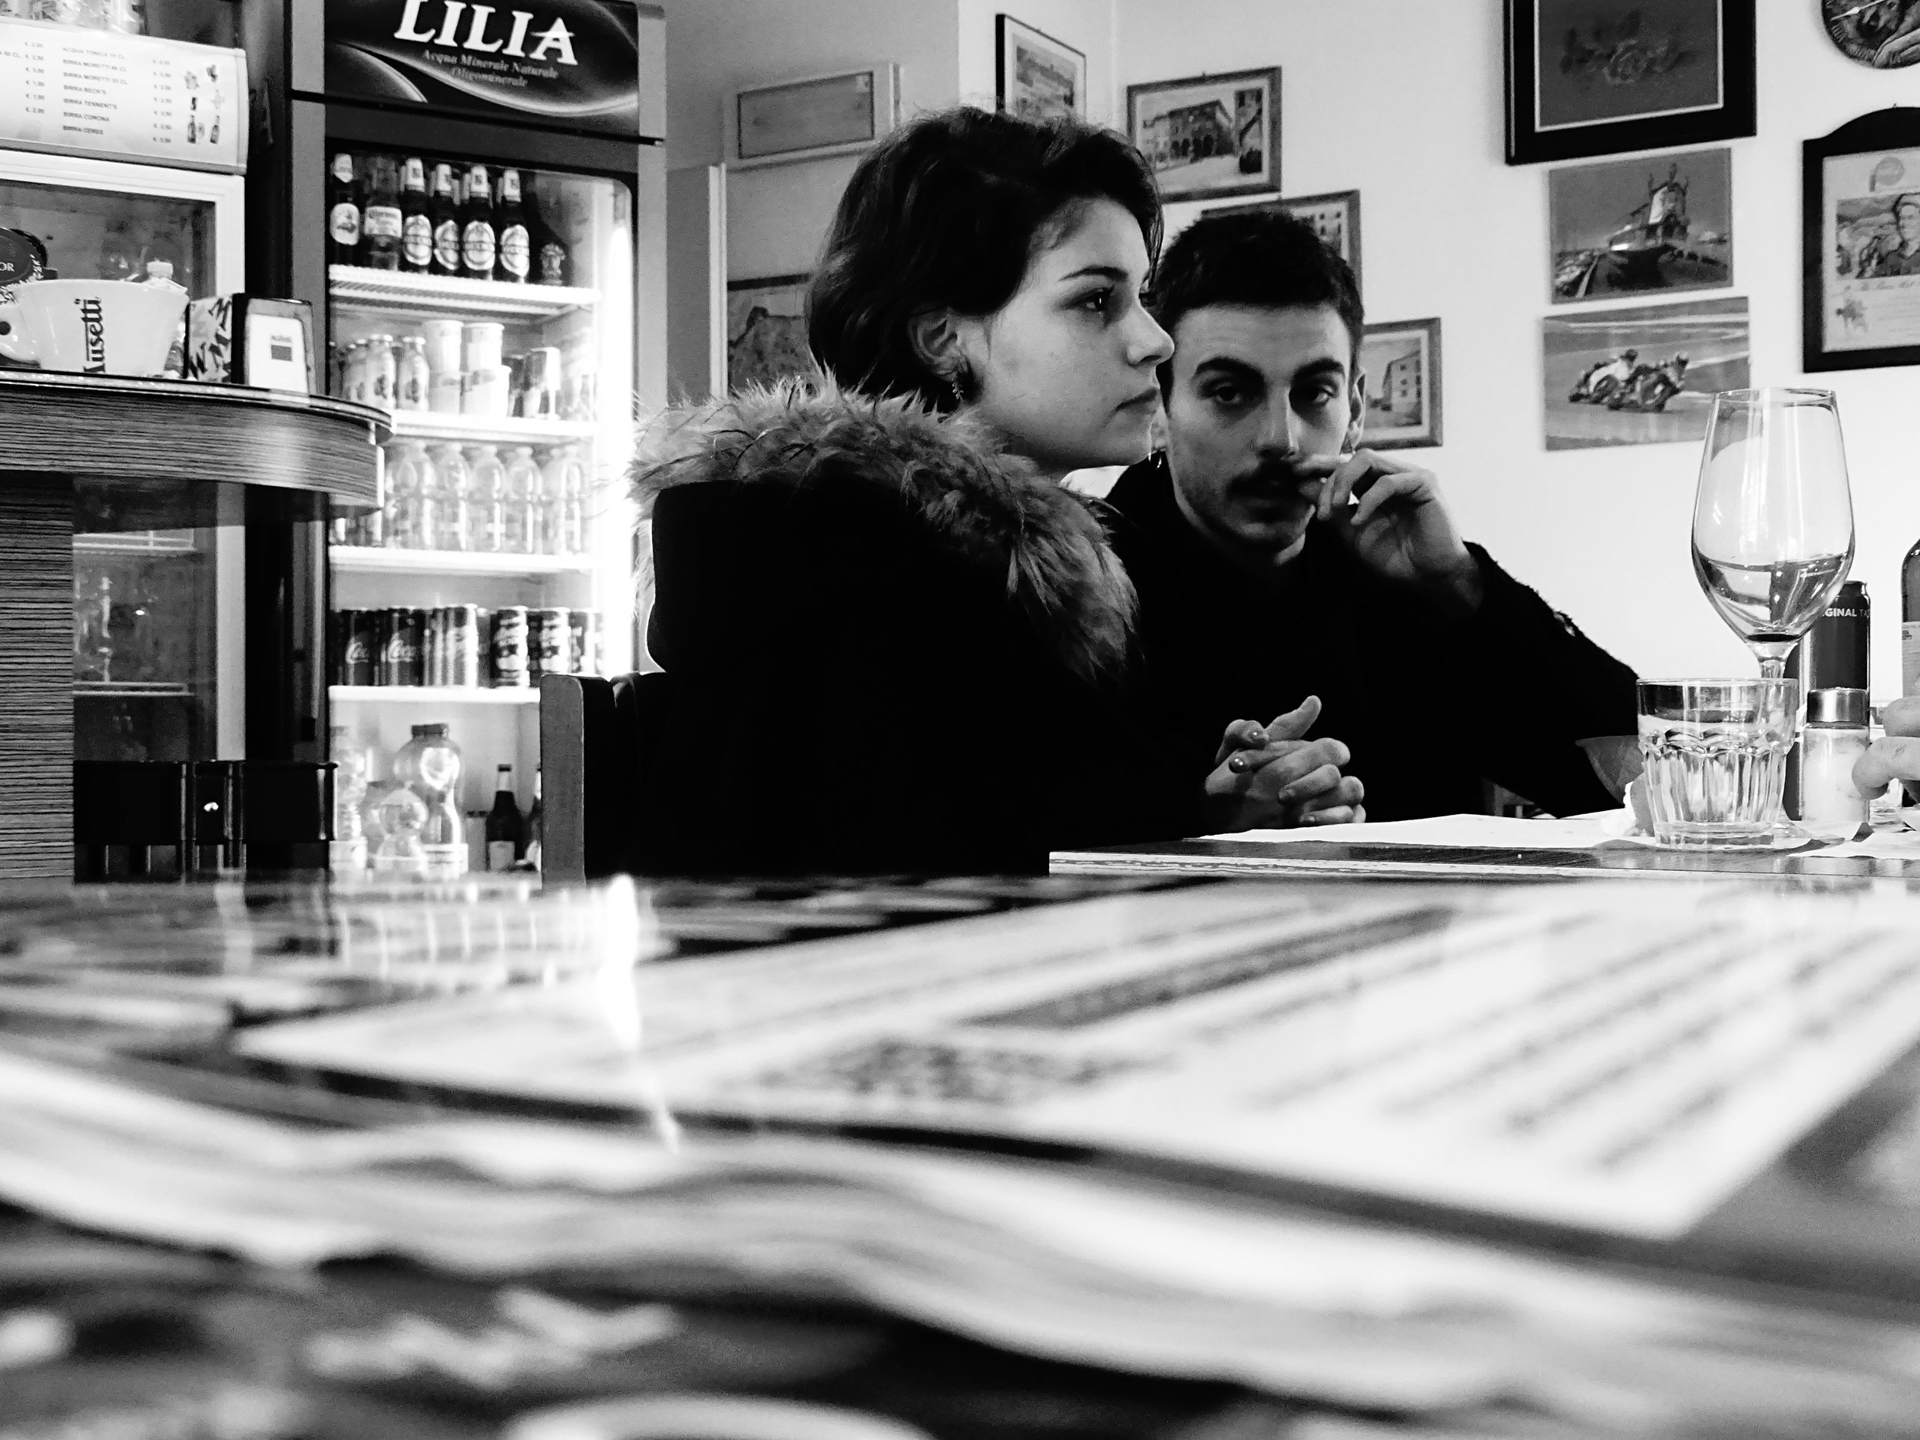 Young Couple in Cafe, Lucca by Stacy Widelitz